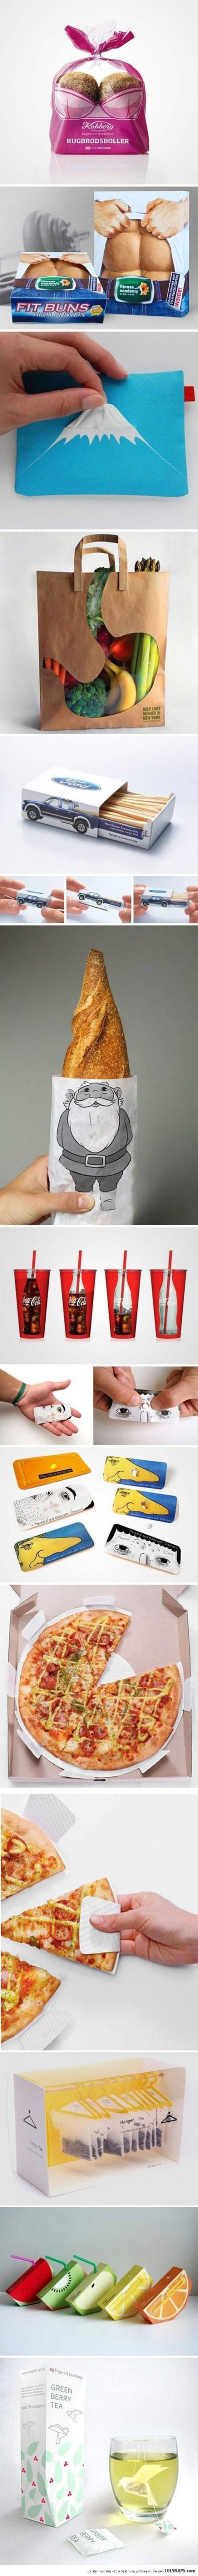 Clever Packaging Design